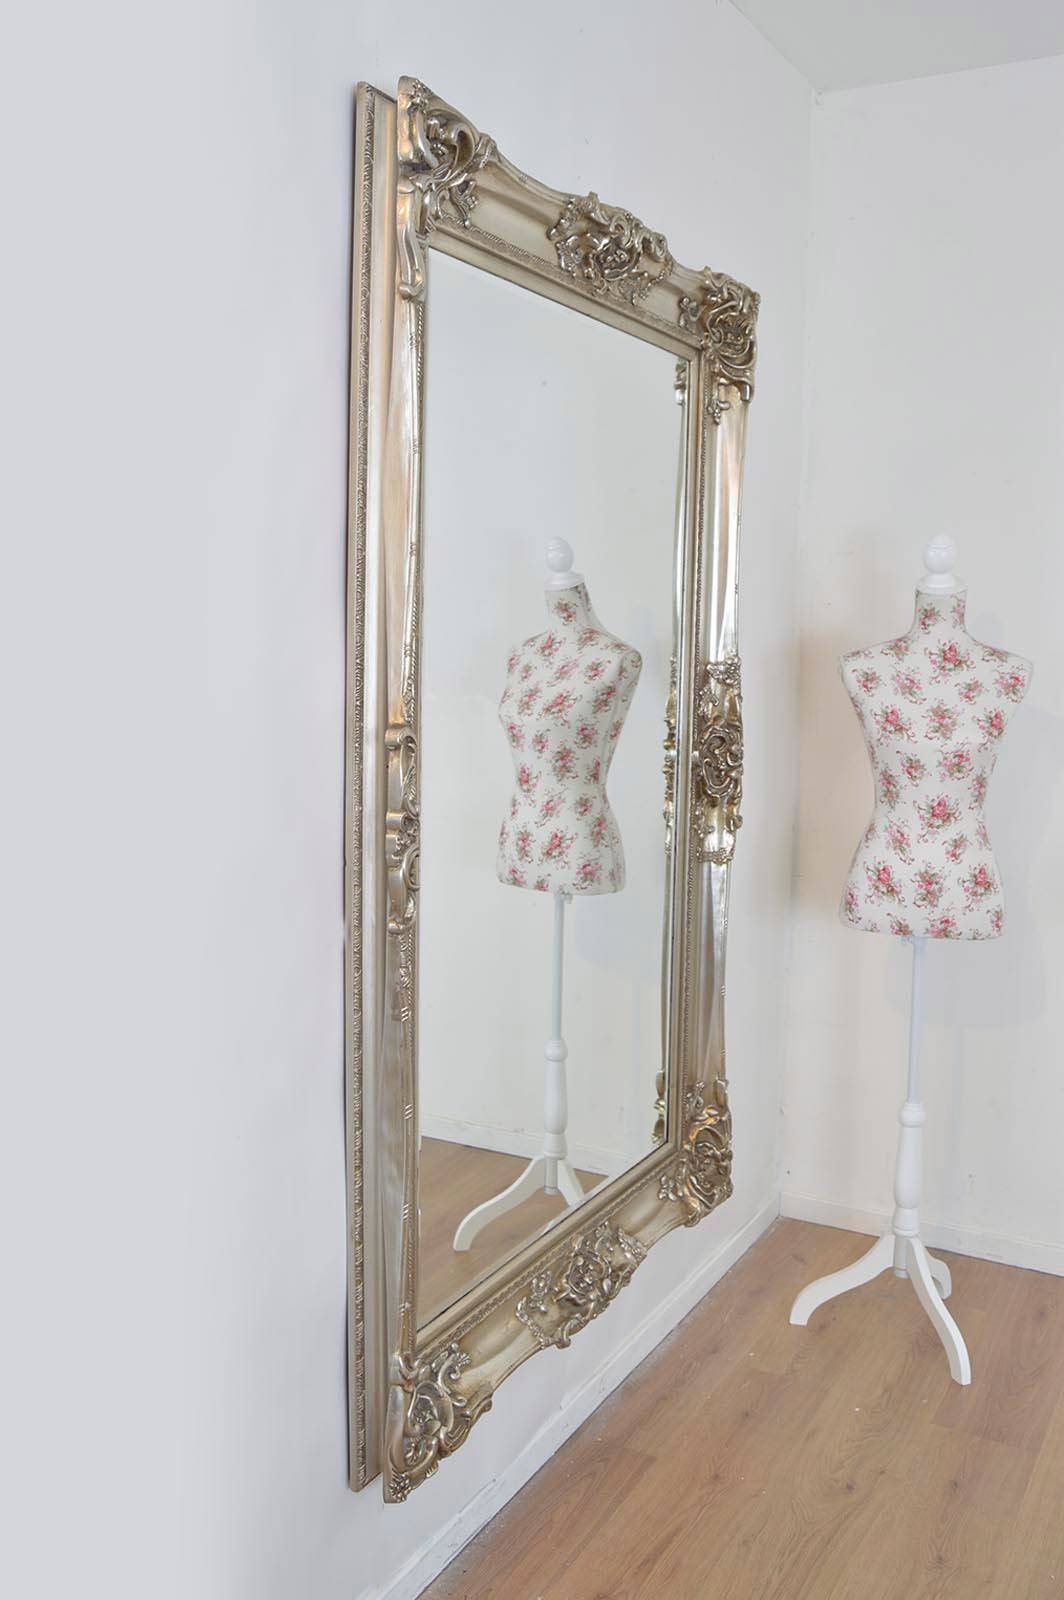 Large Silver Ornate Wall Mirror 122Cm X 183Cm | Large Mirrors throughout Silver Ornate Framed Mirrors (Image 9 of 25)